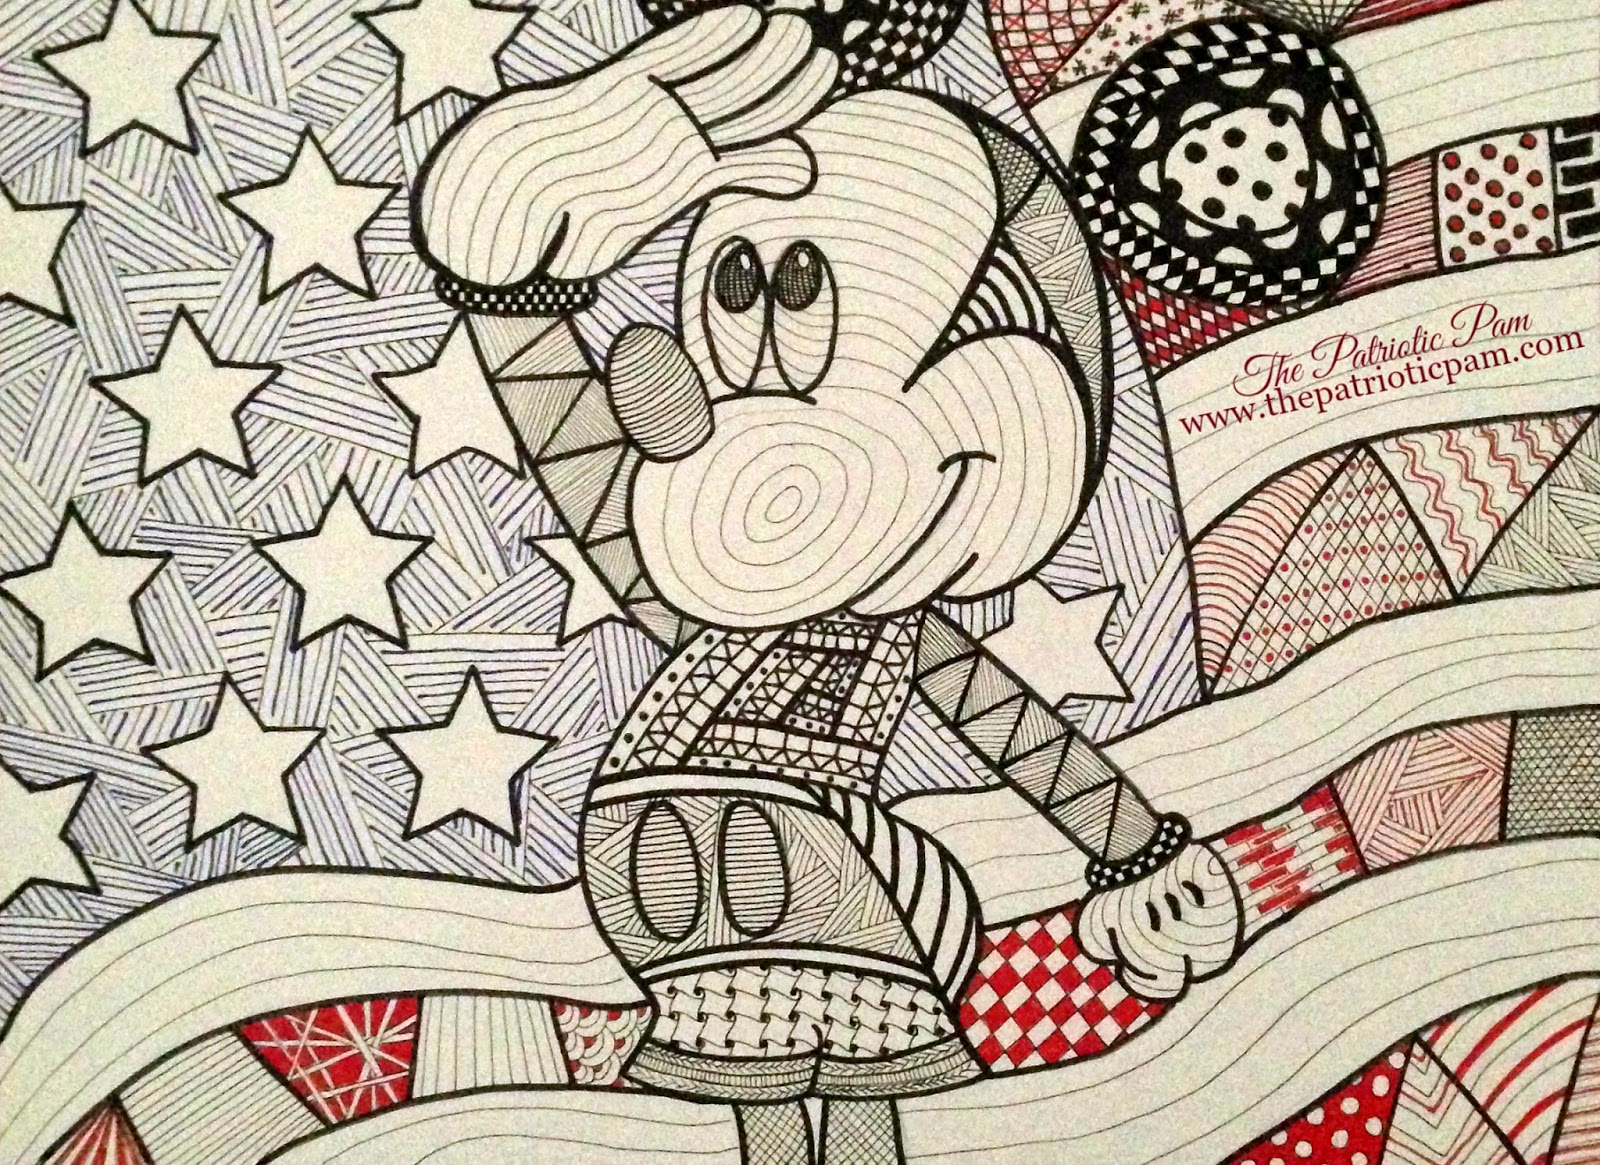 1600x1165 The Patriotic Pam Zentangle Mickey Mouse